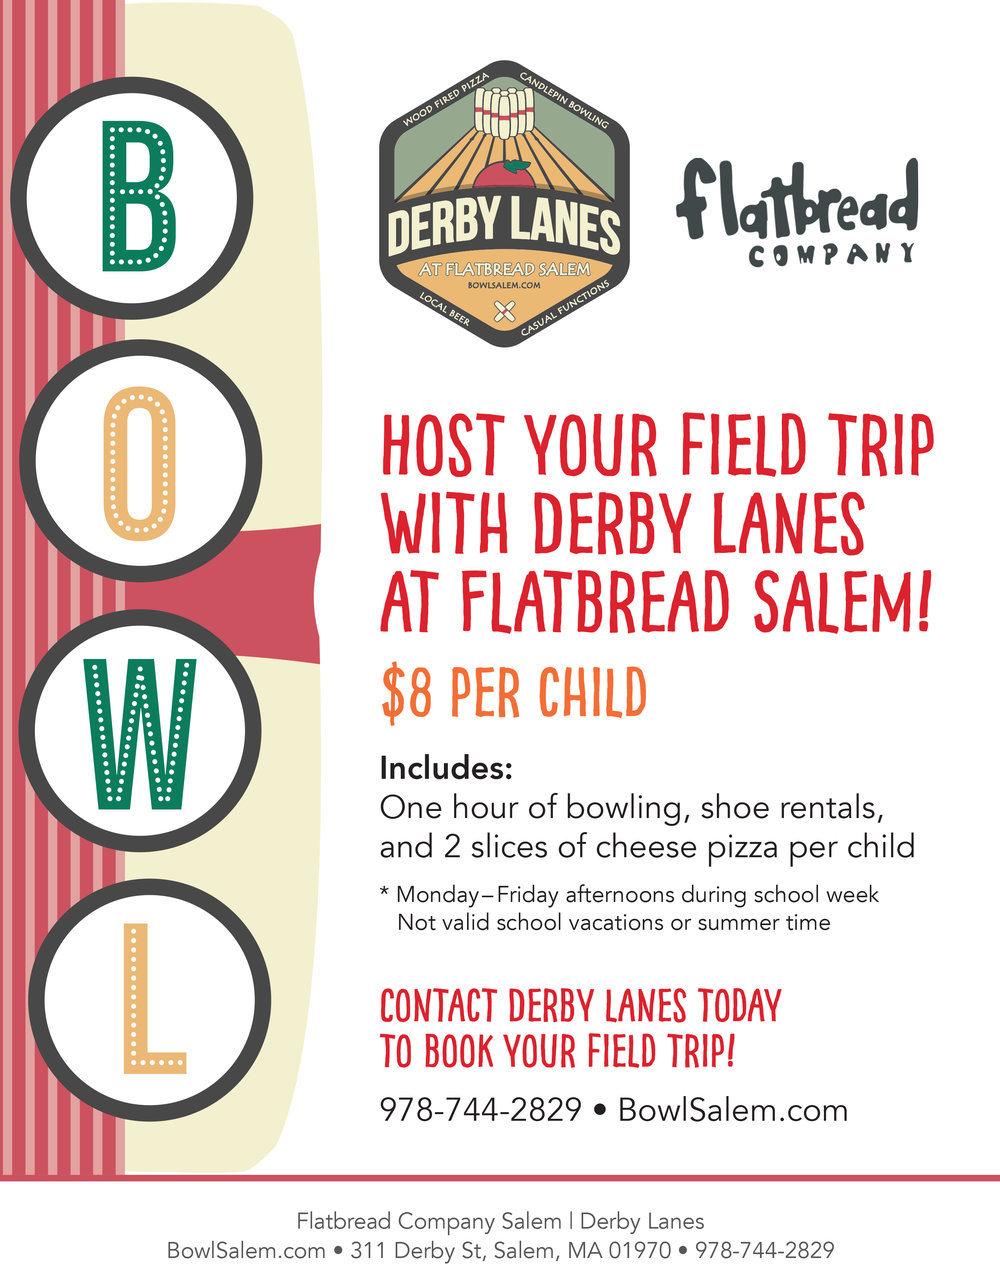 FlatbreadSalem_FieldTripFlyer_final.jpg